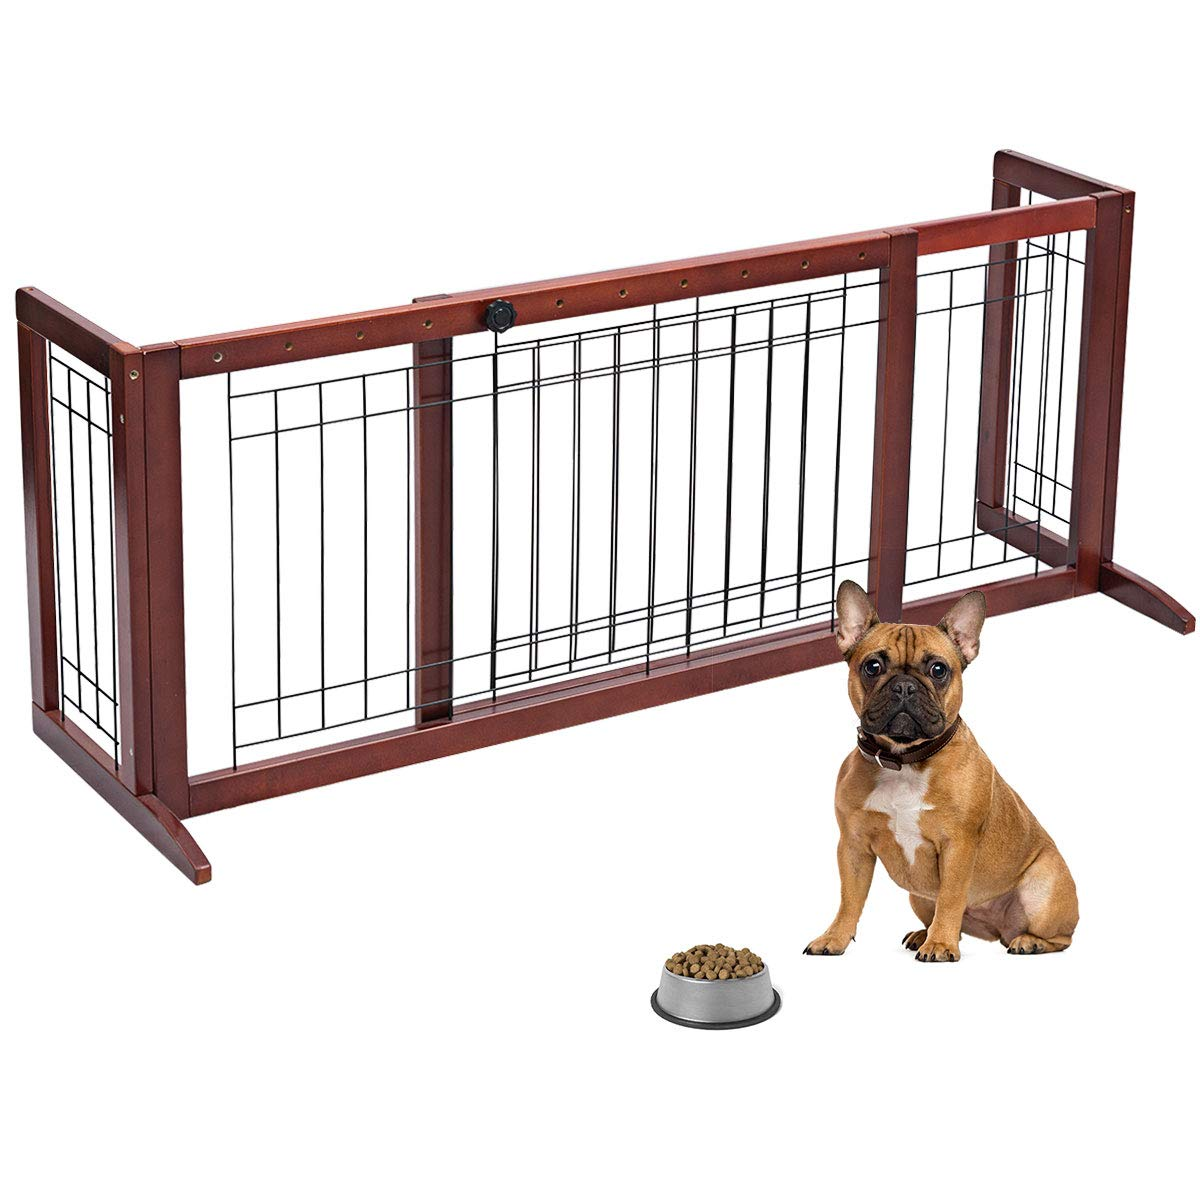 Giantex 39.5'' - 71'' Adjustable Freestanding Pet Gate, Step Over Fence for Small to Medium Sized Pets Dogs Baby, for House Doorway Stairs Extra Wide Pet Safety Fence by Giantex